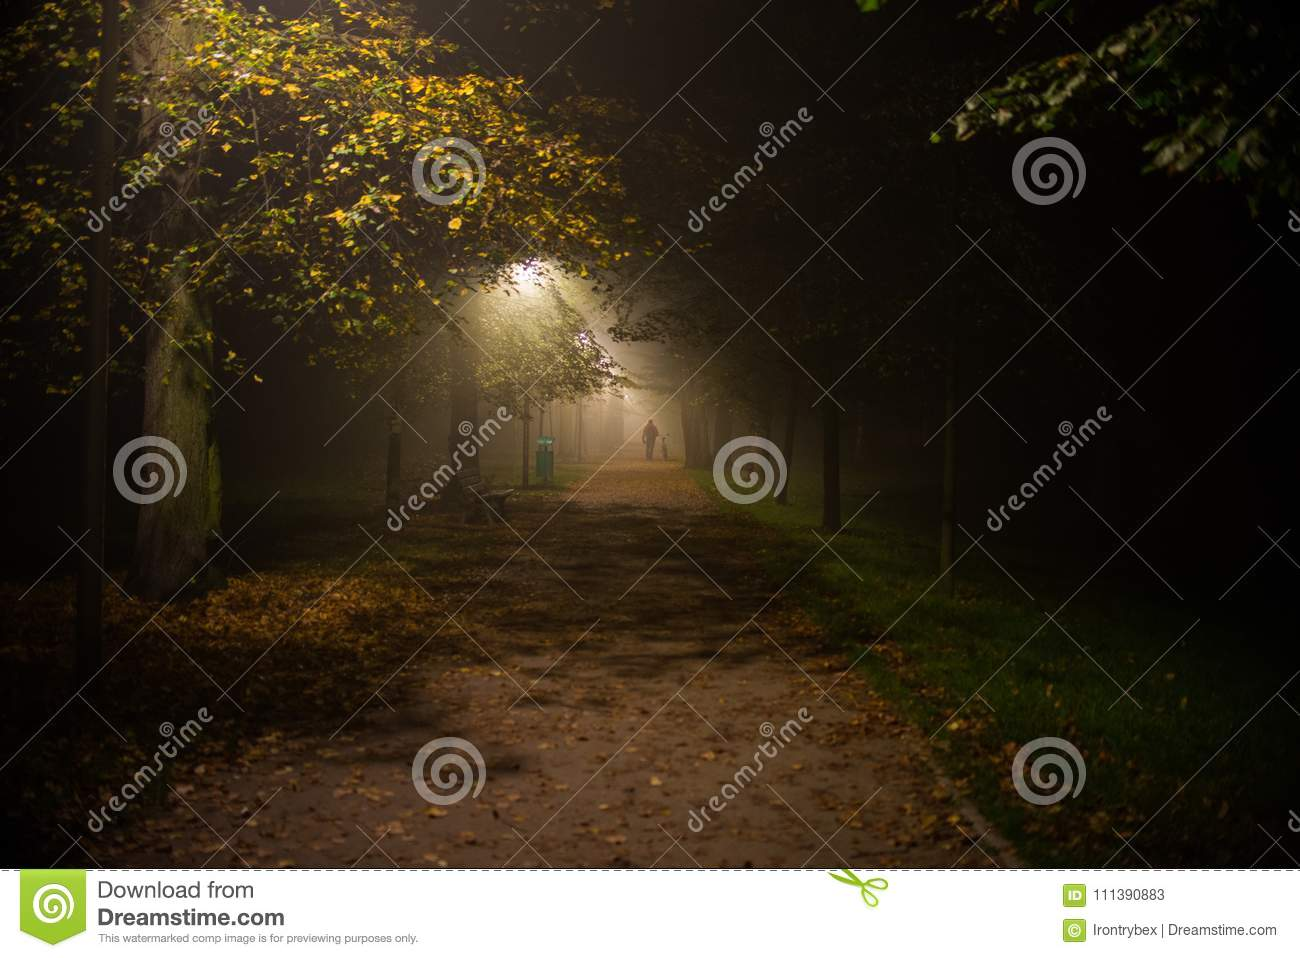 Fog in the park, night, soft focus, high iso,